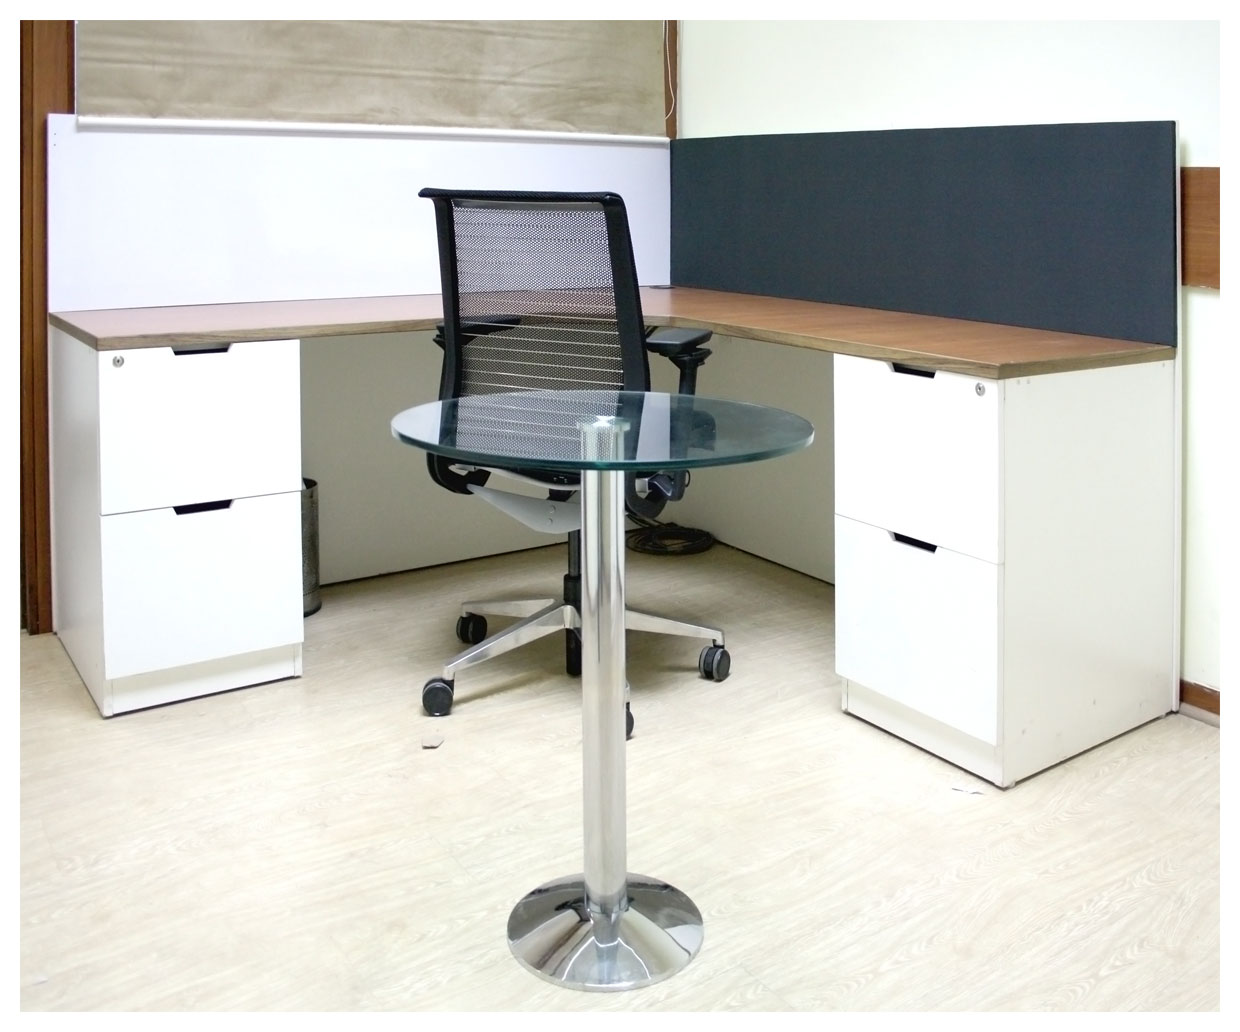 table for l 28 images l shape table for staff  : osr pmt designs conference table workstation chair tageco trafigura 4 from fapika.com size 1240 x 1032 jpeg 138kB